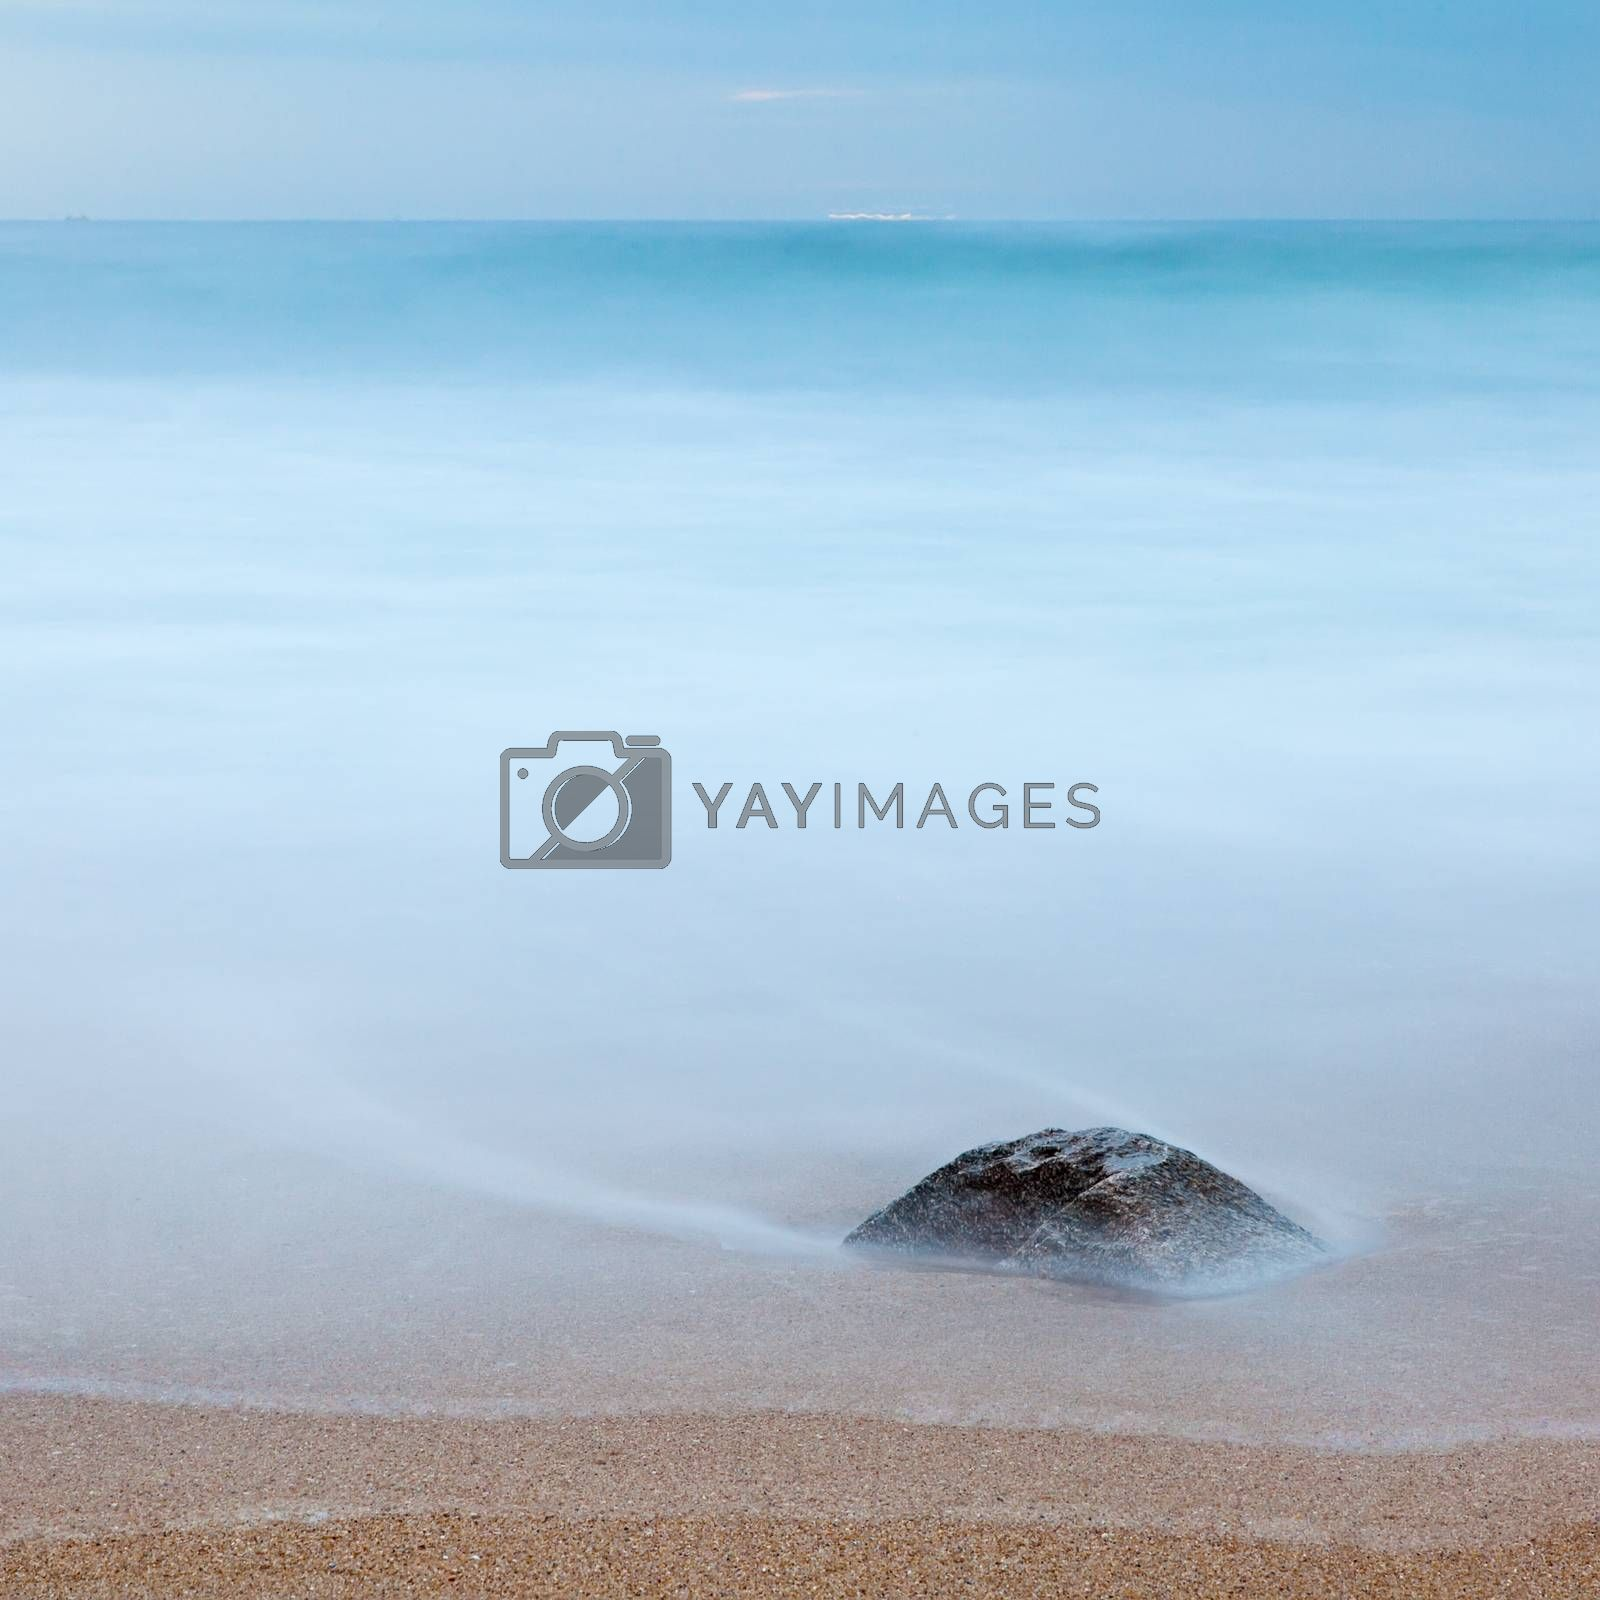 Photo of a rock on a beach, buried in the sand and covered by the ocean. Long exposure. Copy space.